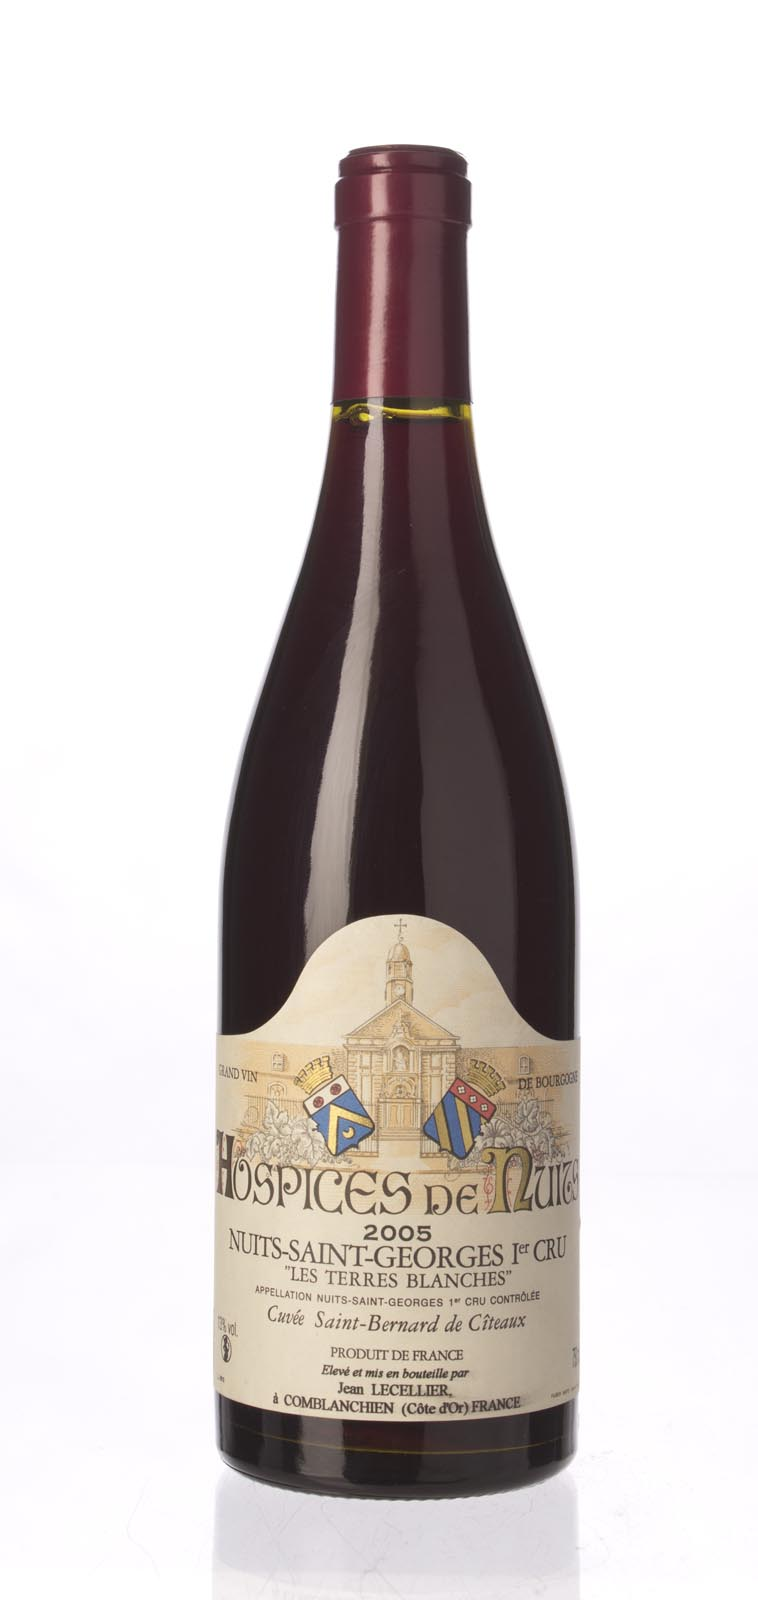 Jean Lecellier Hospices de Nuits Nuits St. Georges les Terres Blanches Cuvee St. Bernard de Citeaux 2005, 750mL () from The BPW - Merchants of rare and fine wines.